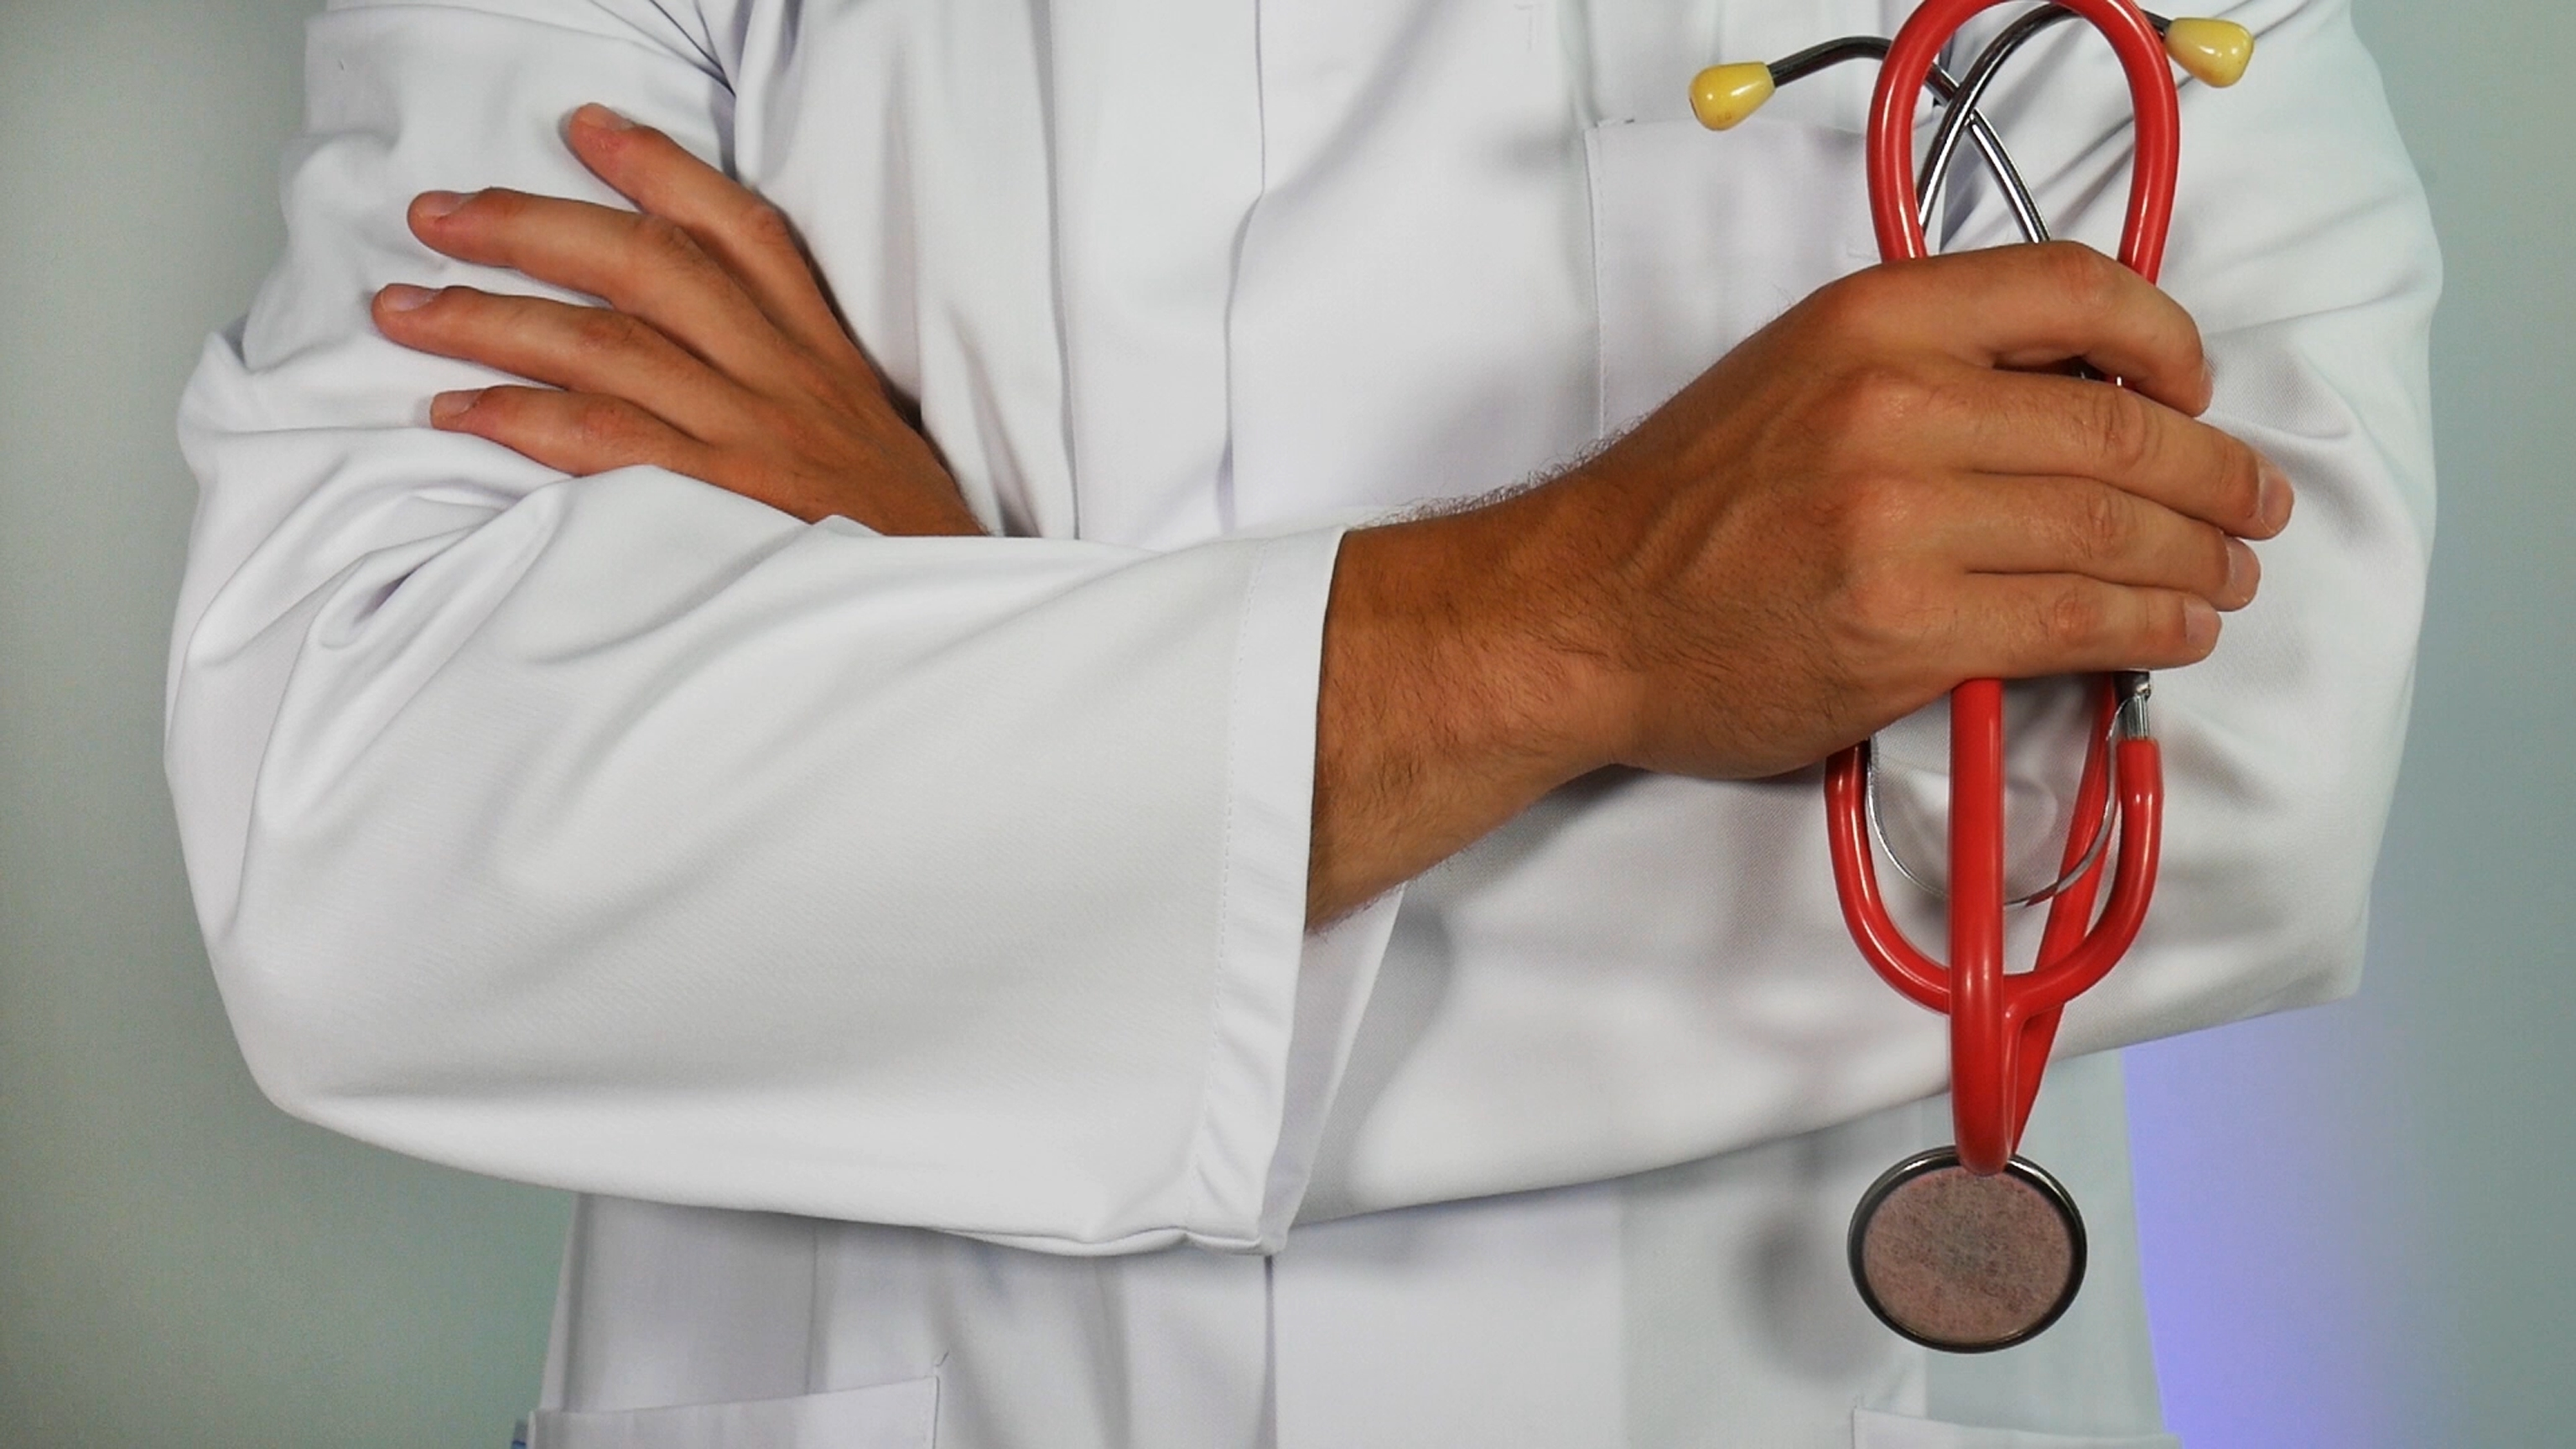 Startup Wants Health Records in Cloud